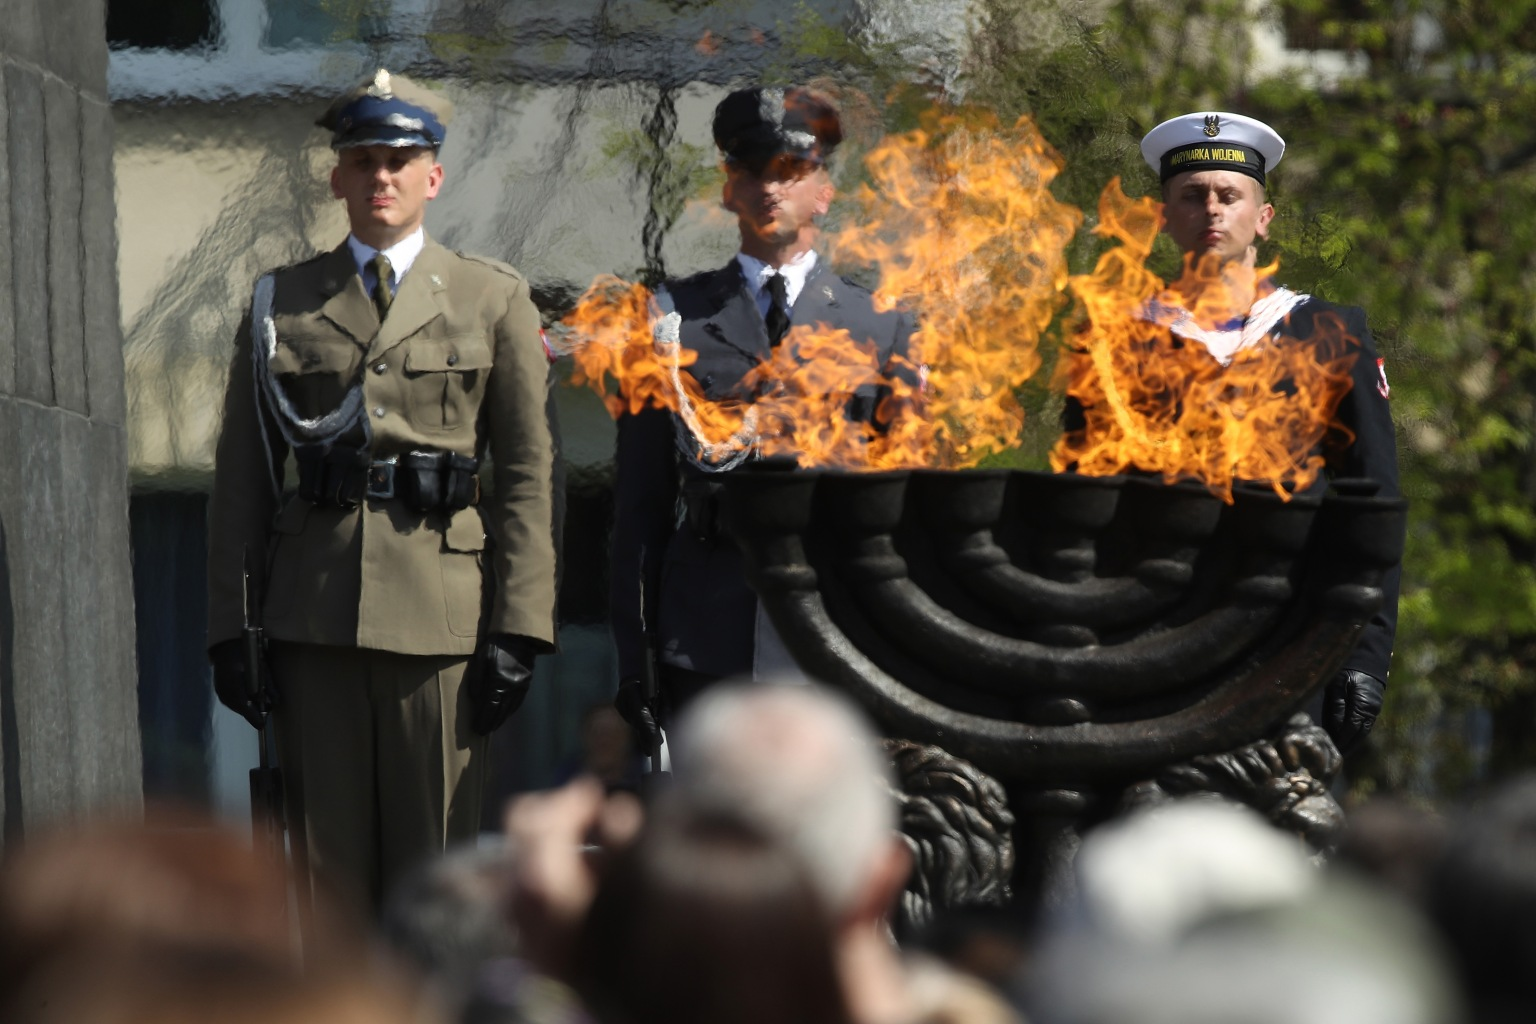 Polish soldiers attend a ceremony marking the 75th anniversary of the Warsaw Ghetto uprising on April 19. The ghetto confined Jews in horrific, deadly conditions during Germany's occupation of Warsaw during World War II. With assistance from Polish partisans, the Jews rose up and fought the Germans for several weeks until the Germans annihilated the ghetto, killing tens of thousands. Sean Gallup/Getty Images